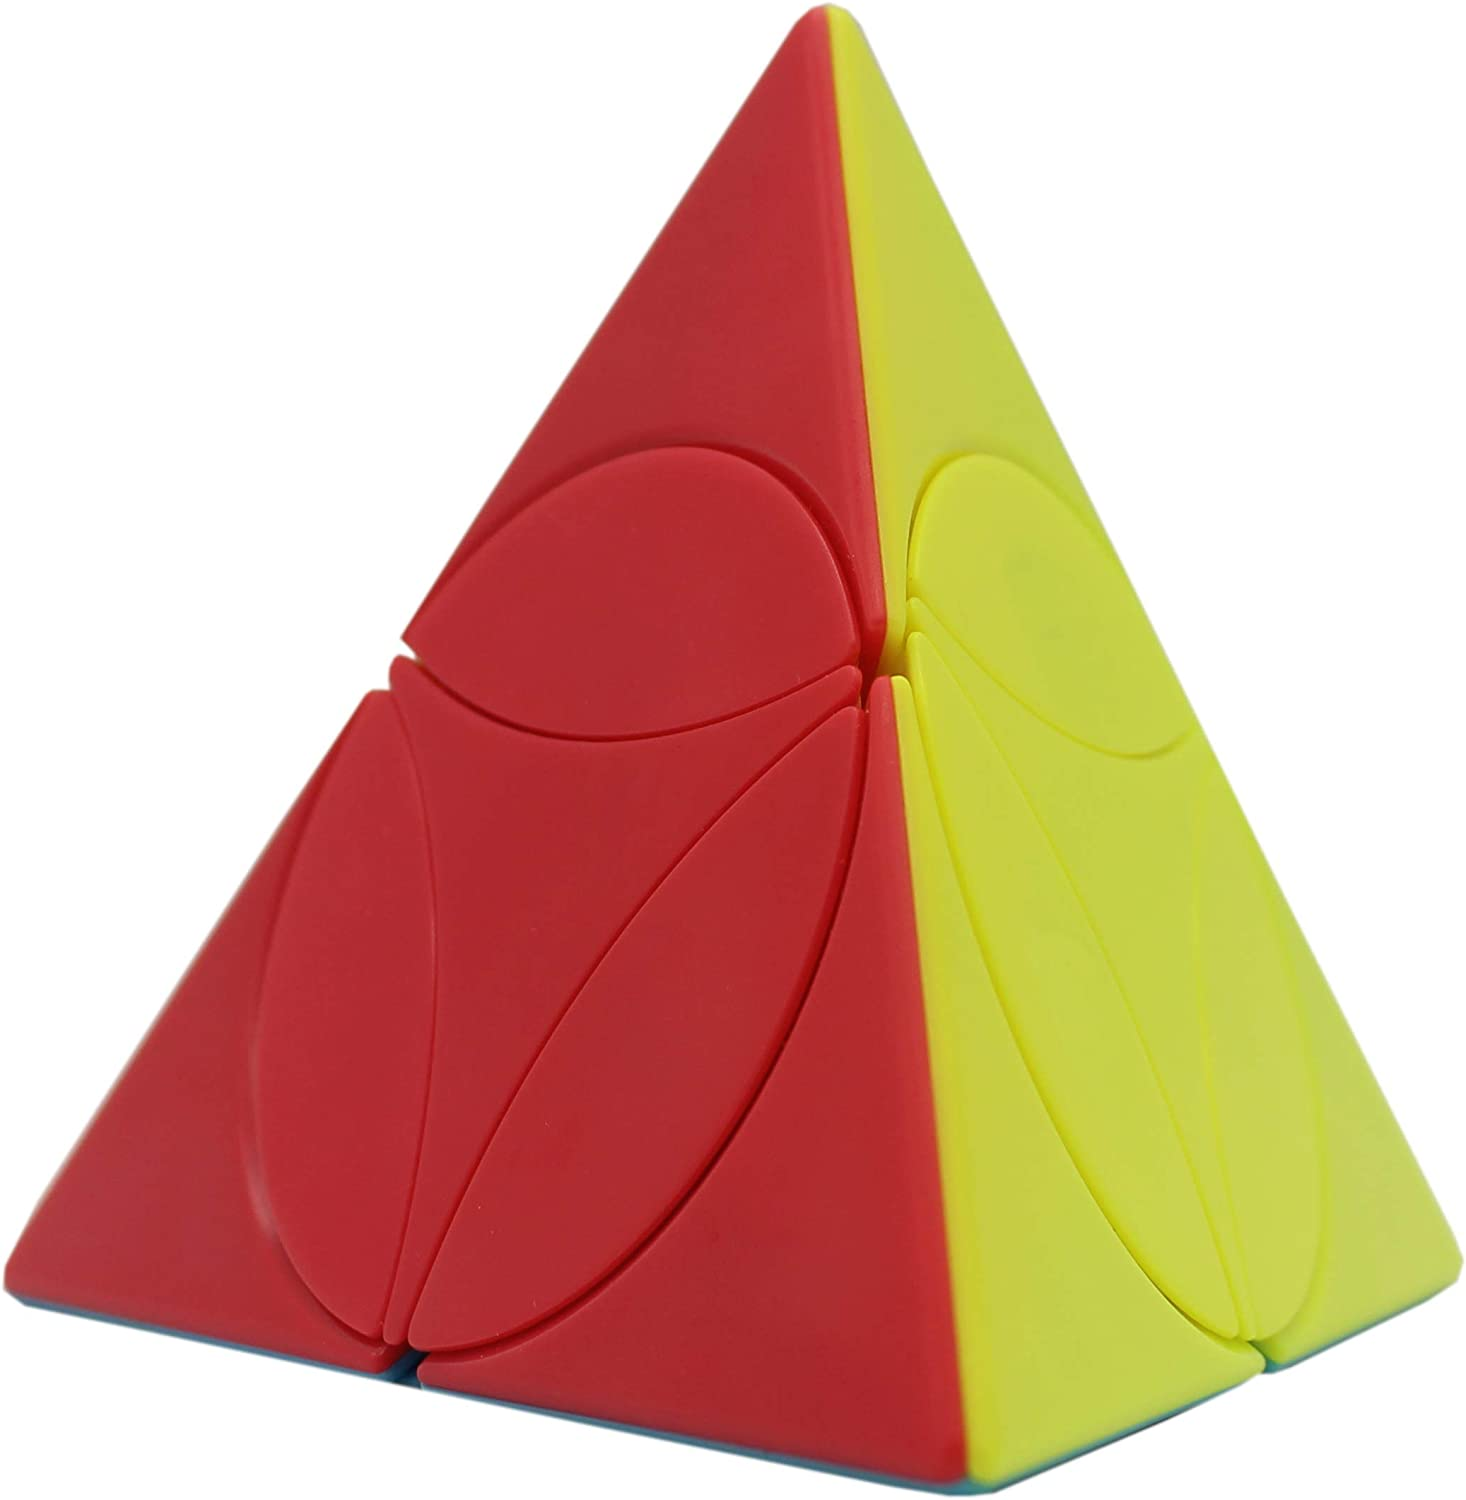 Tetrahedron In A Cube